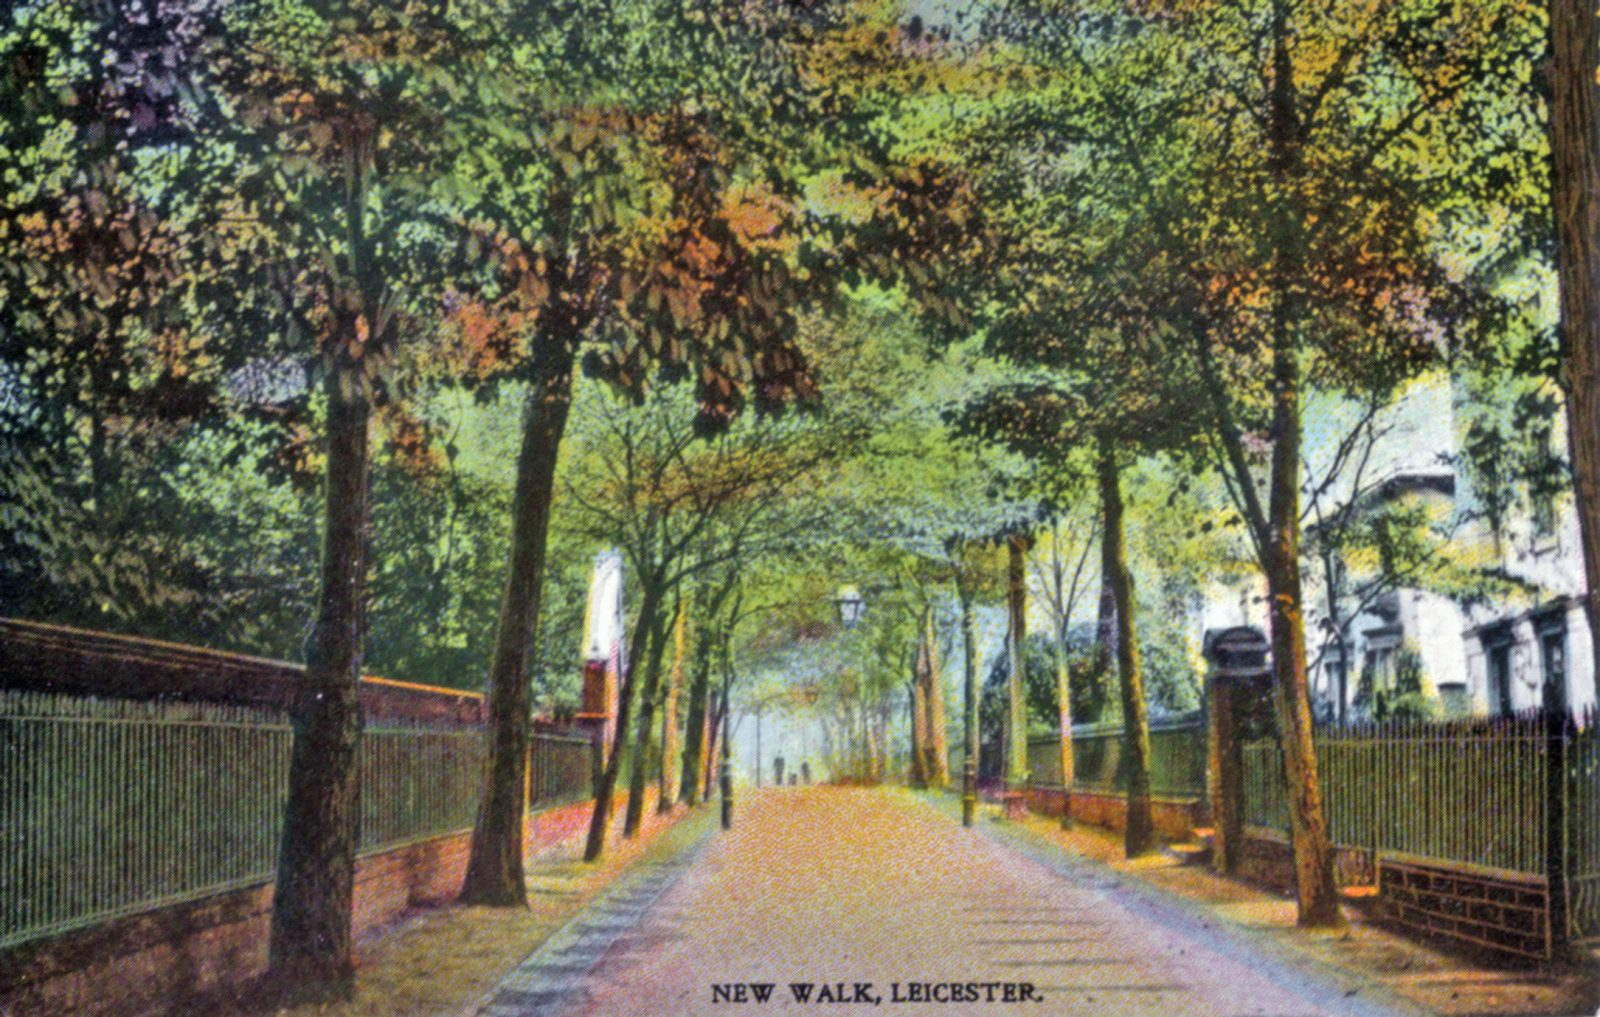 New Walk, Leicester. 1901-1920: General view with New Walk extending into distance (File:1110)